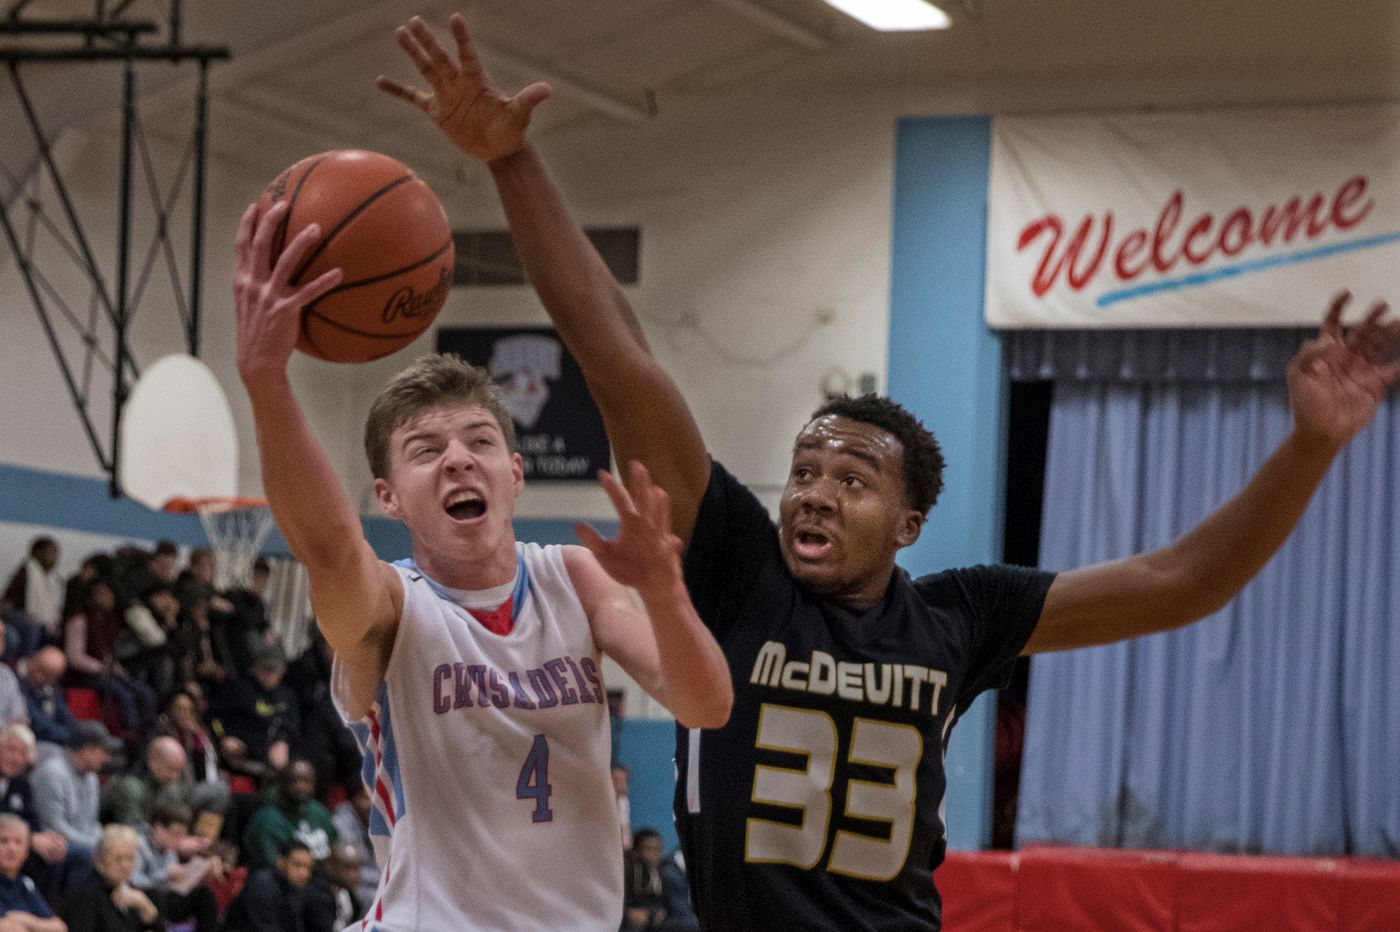 Once-downtrodden Bishop McDevitt boys' basketball team is on the rise